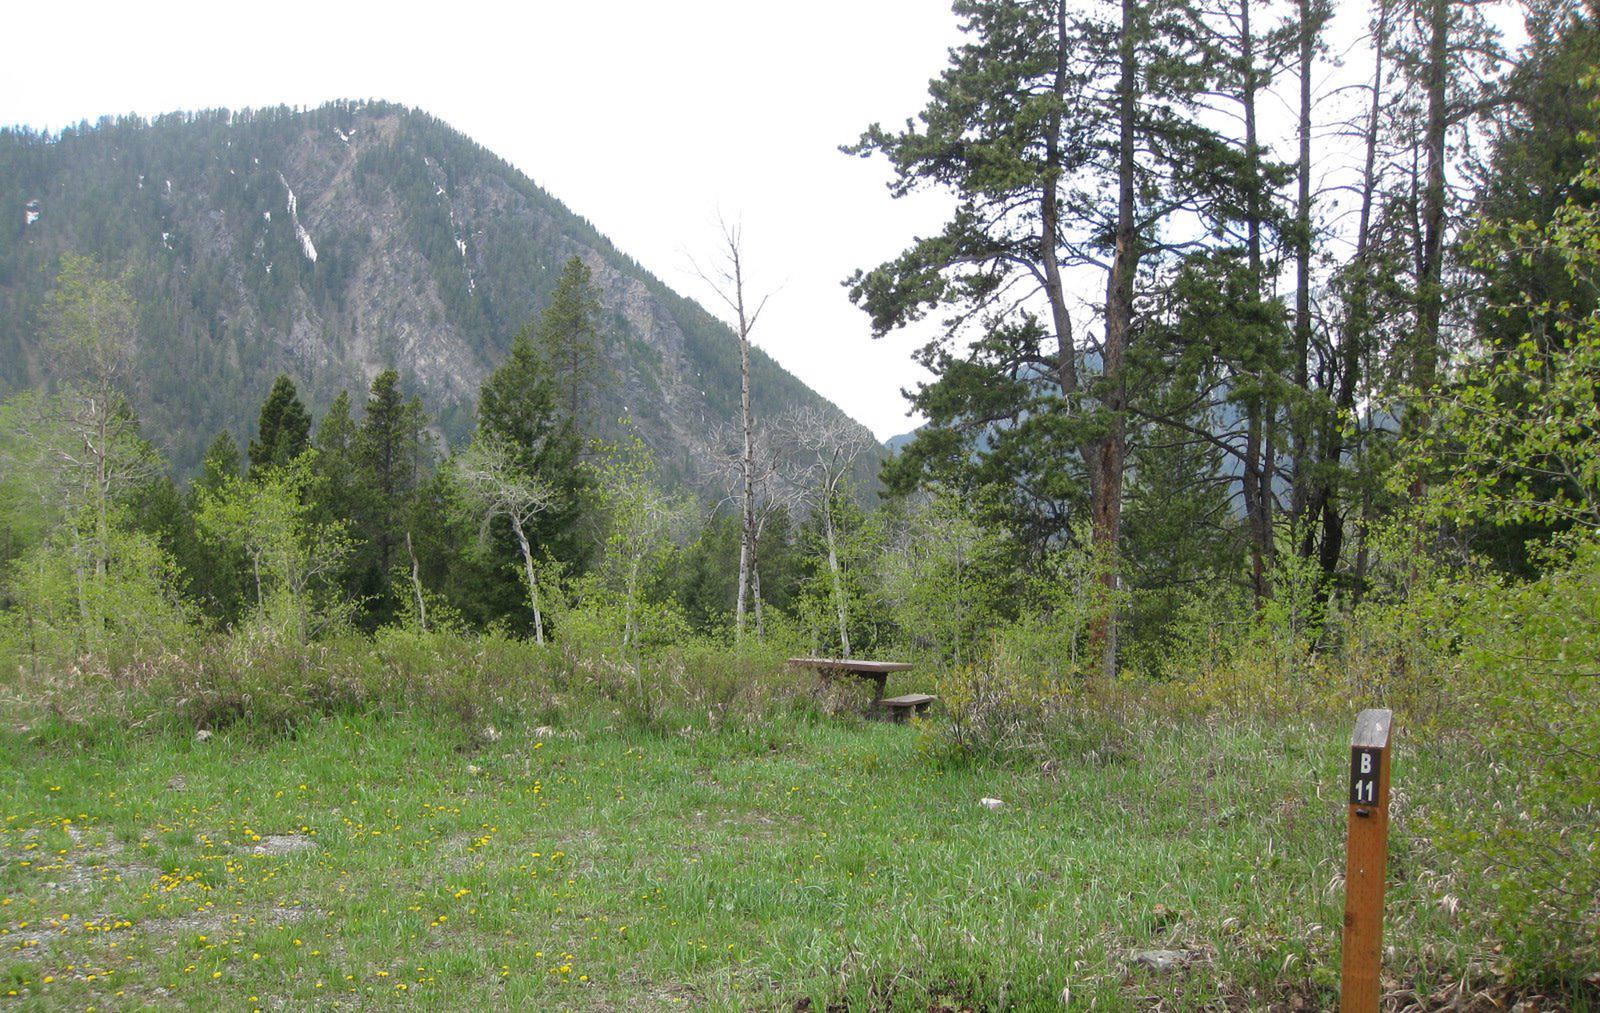 Site B11, campsite surrounded by pine trees, picnic table & fire ringSite B11